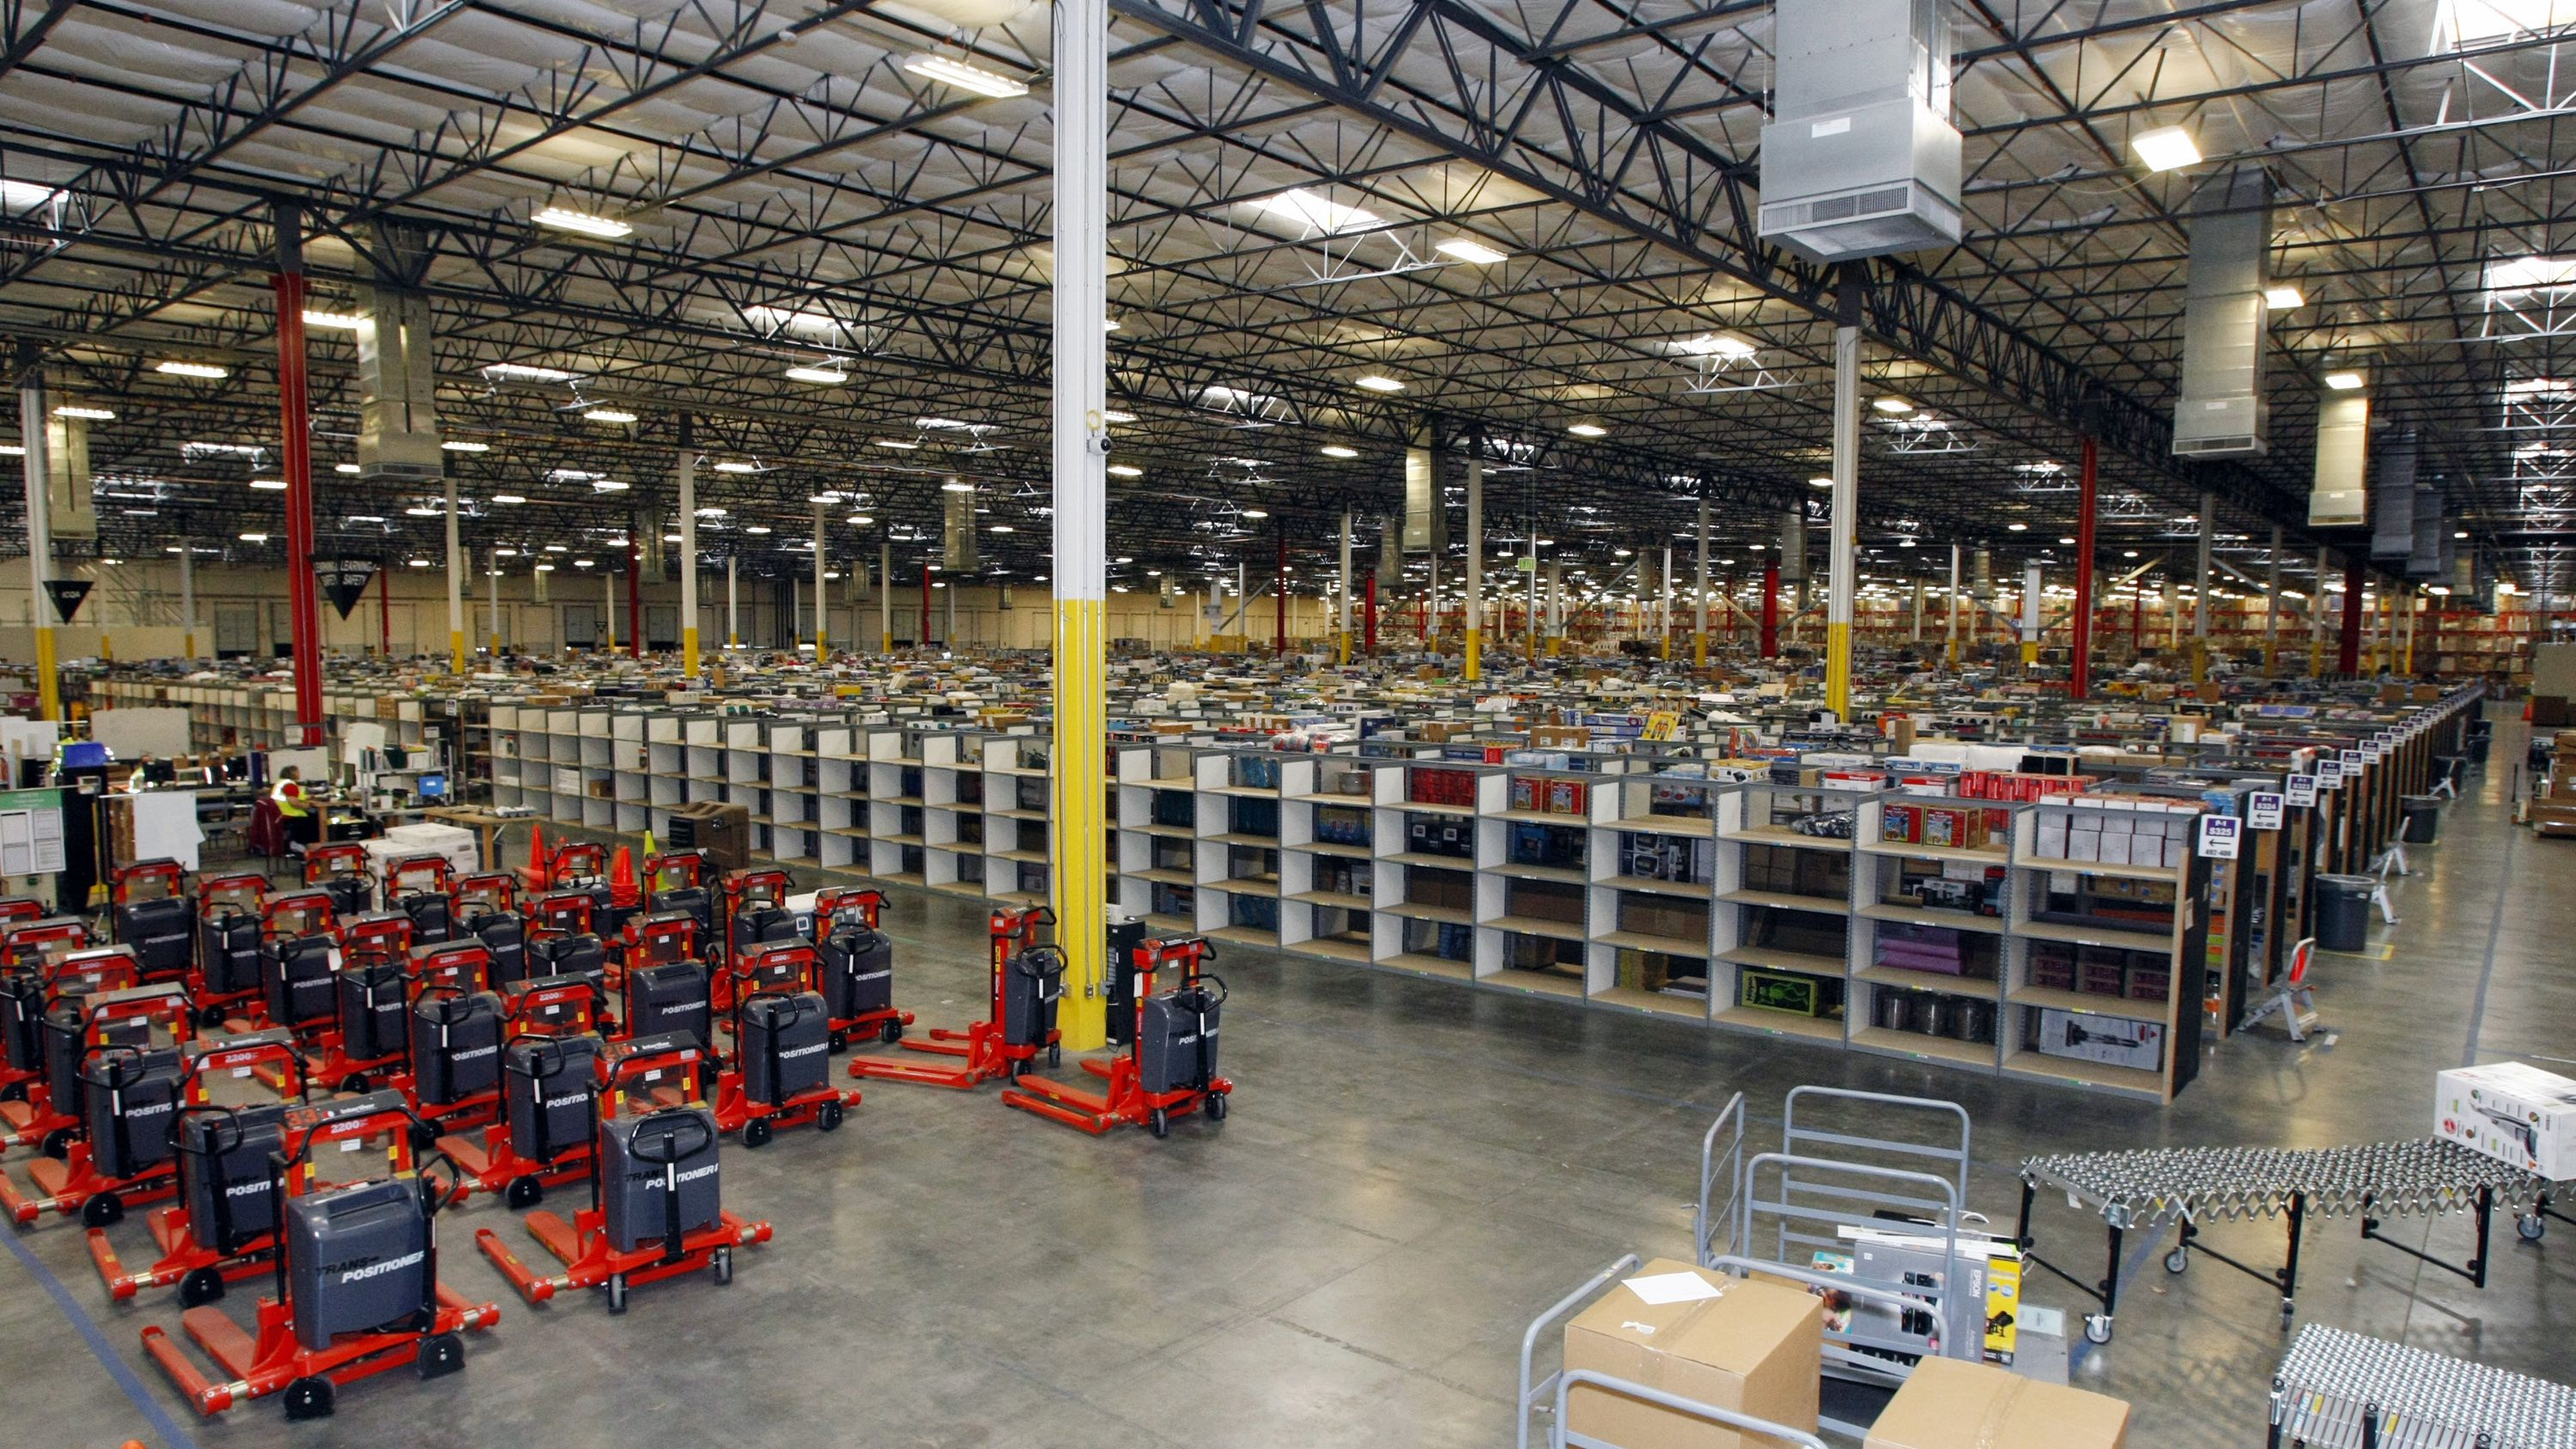 """Merchandise sits at the Amazon Phoenix Fulfillment Center in Goodyear, Arizona, in this file image from November 16, 2009. The White House on January 29, 2010 hailed a report of 5.7 percent economic growth in the fourth quarter as """"the most positive news to date on the economy"""" and said the Obama administration's focus must remain on job creation. REUTERS/Rick Scuteri/Files (UNITED STATES - Tags: BUSINESS) - RTR29MCG"""